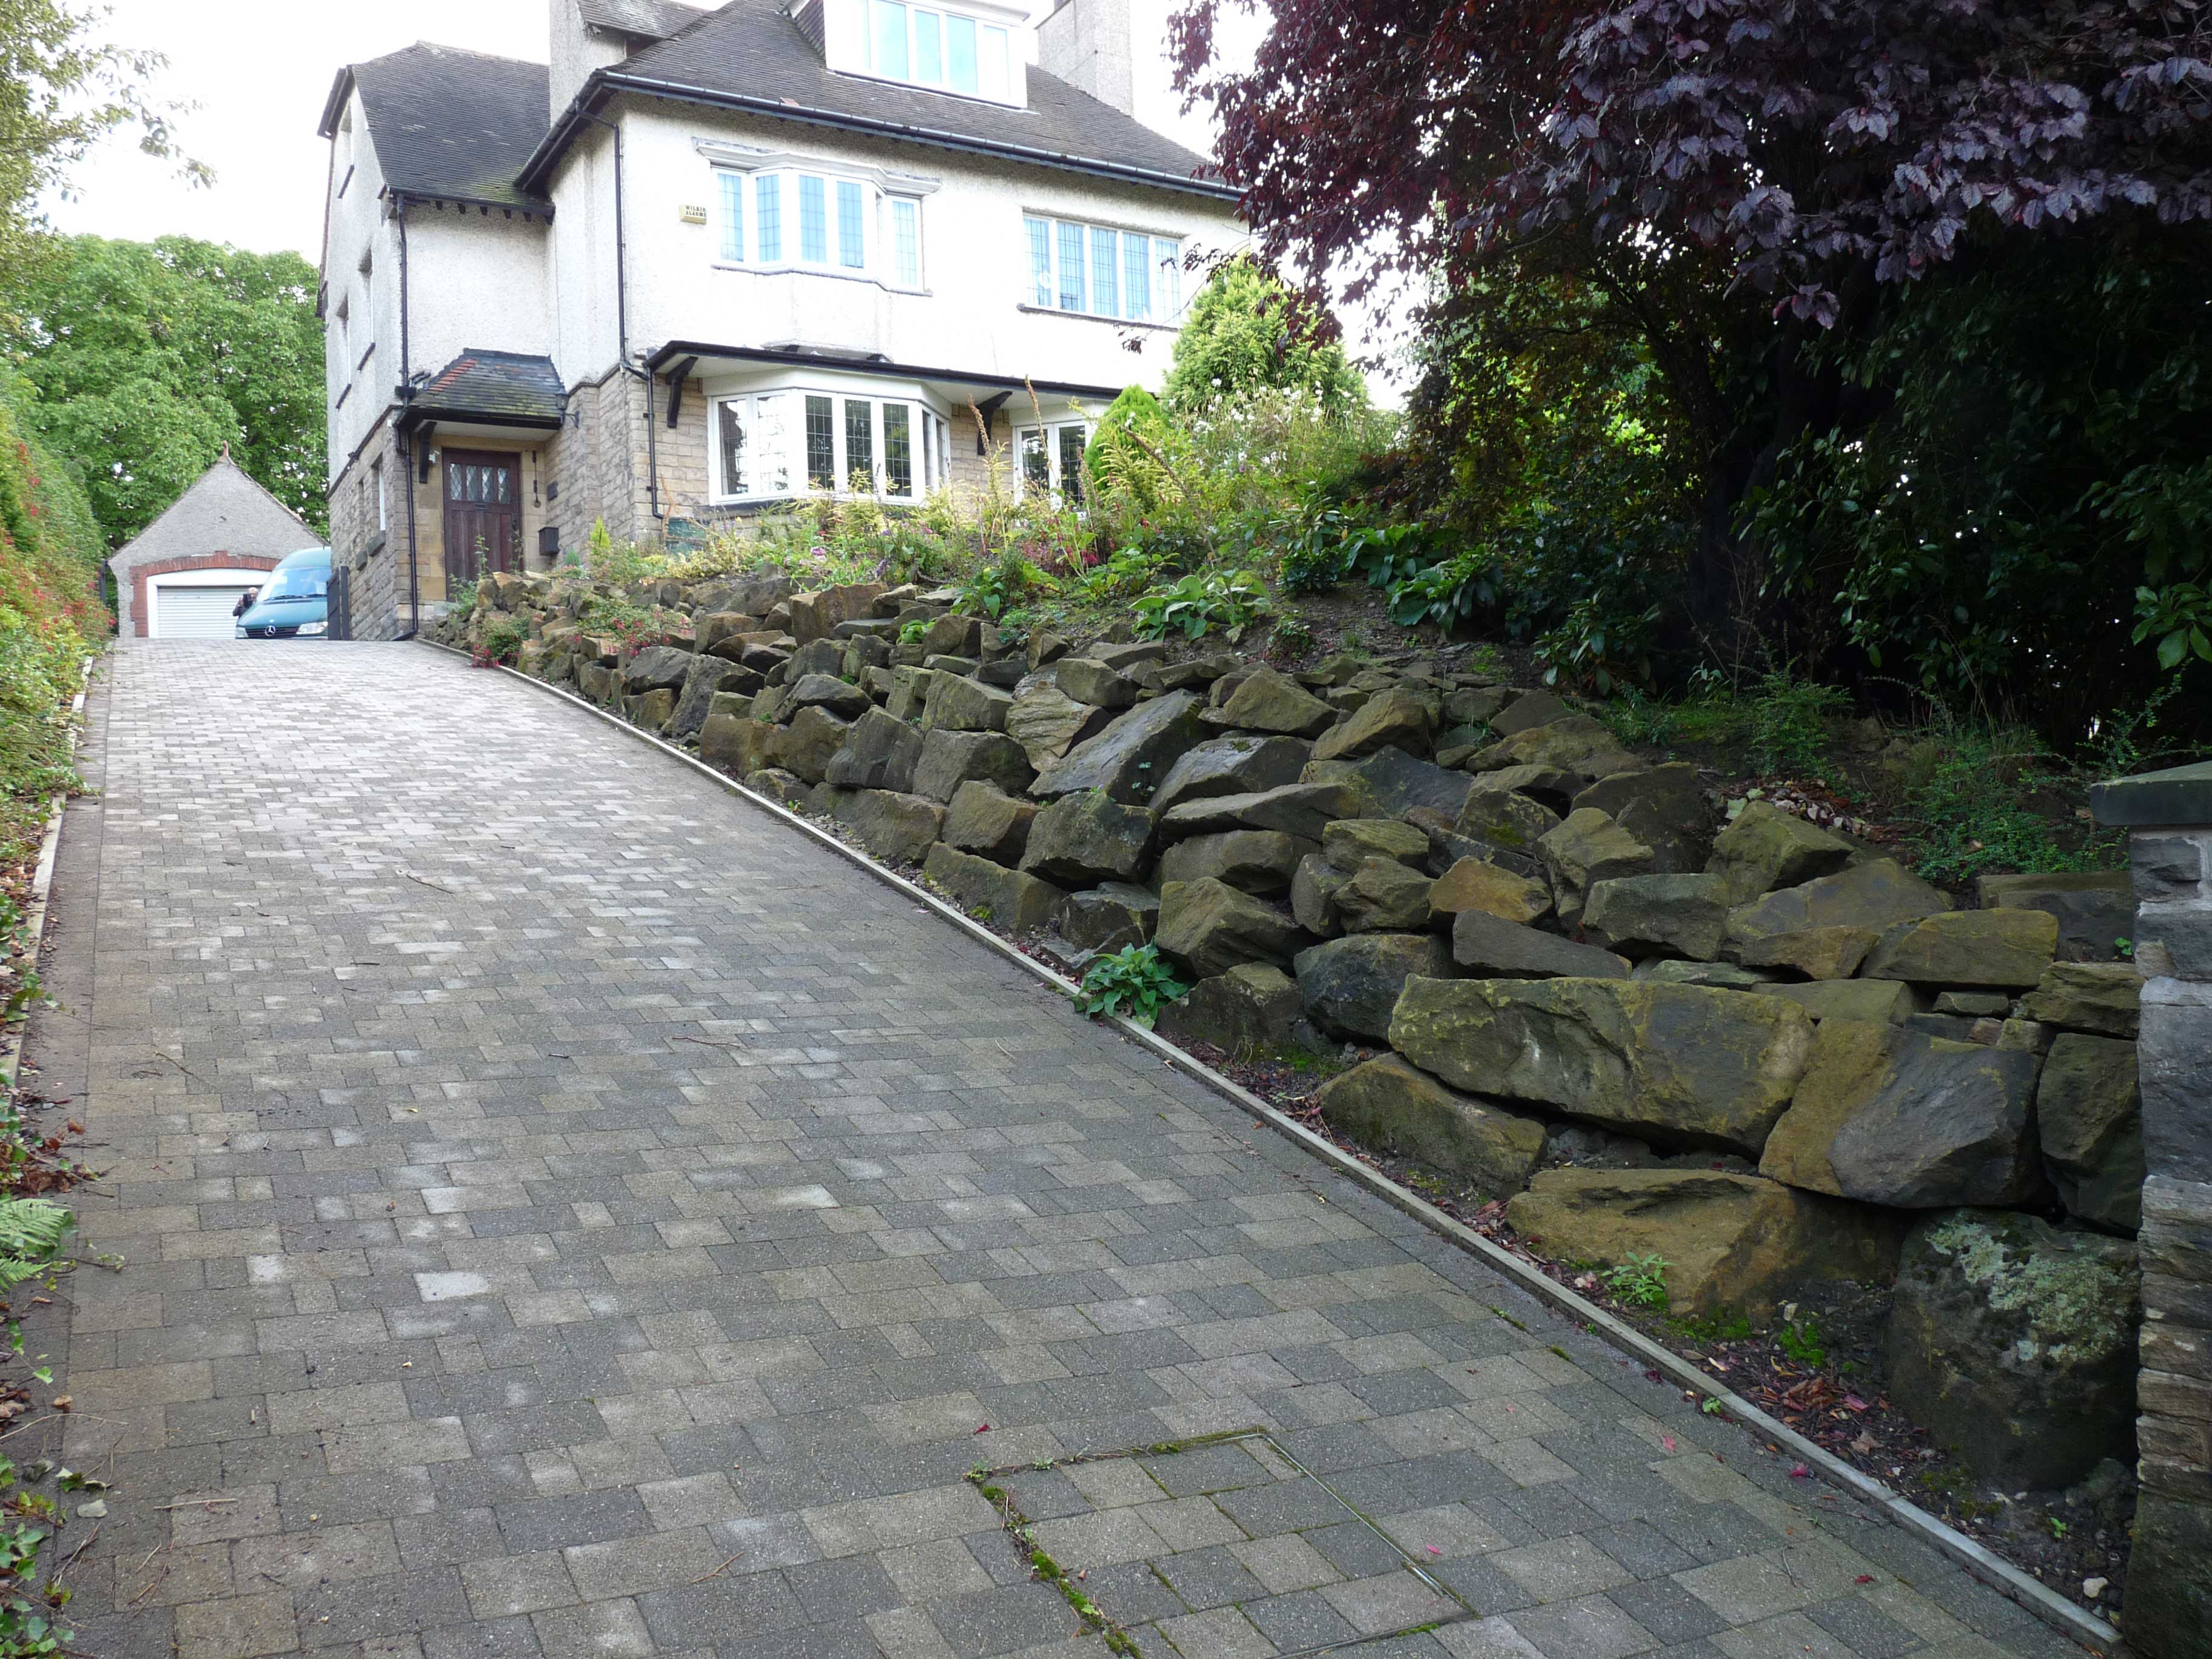 Landscaping to the side. Rocky wall face. Agrent Paving